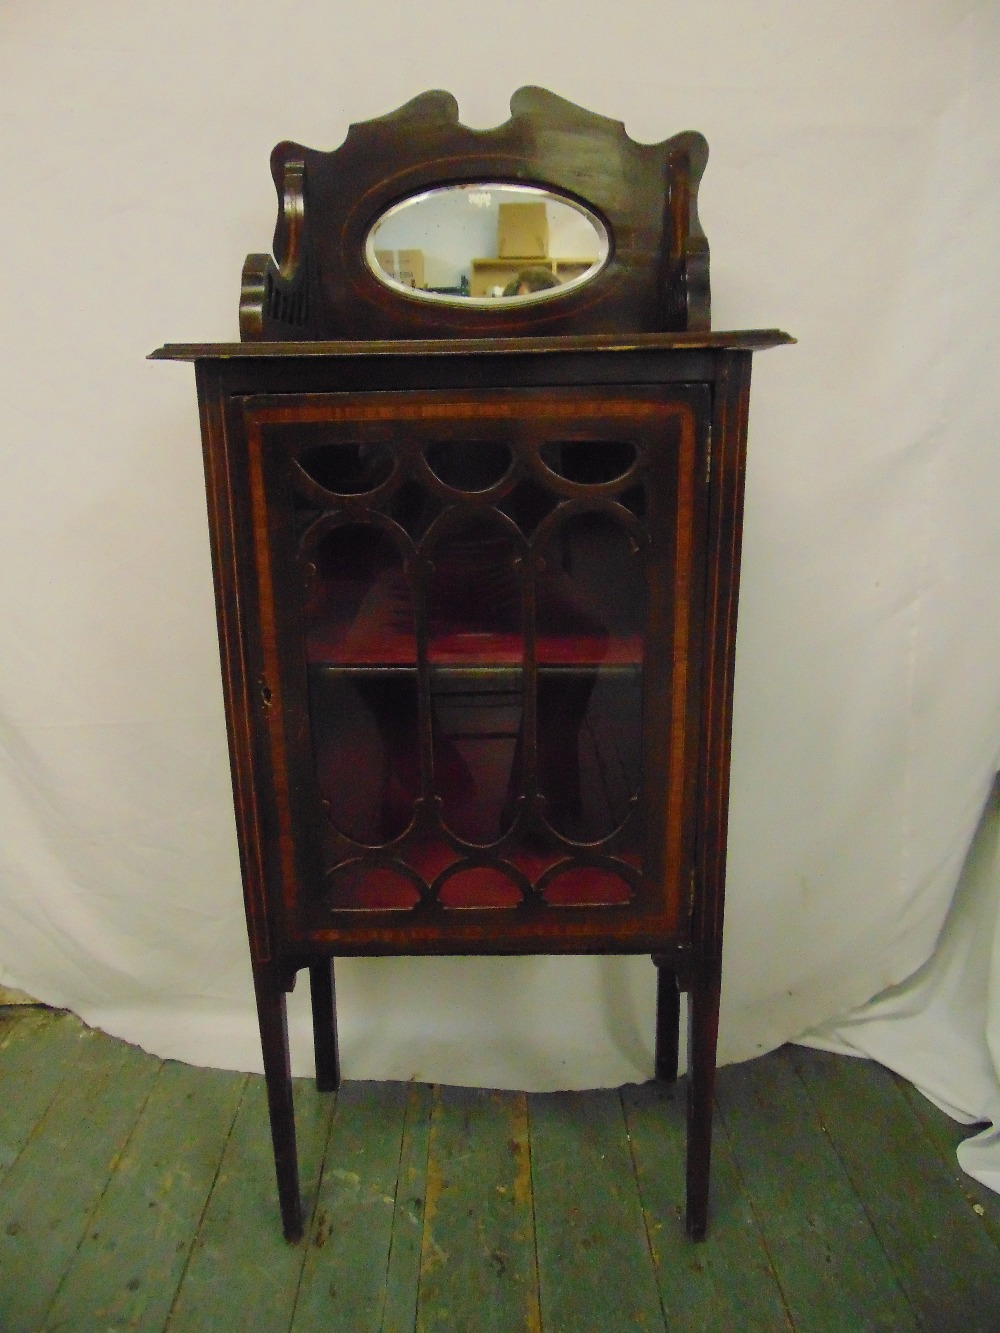 Lot 15 - An Edwardian rectangular mahogany inlaid bow front glazed display cabinet surmounted by an oval